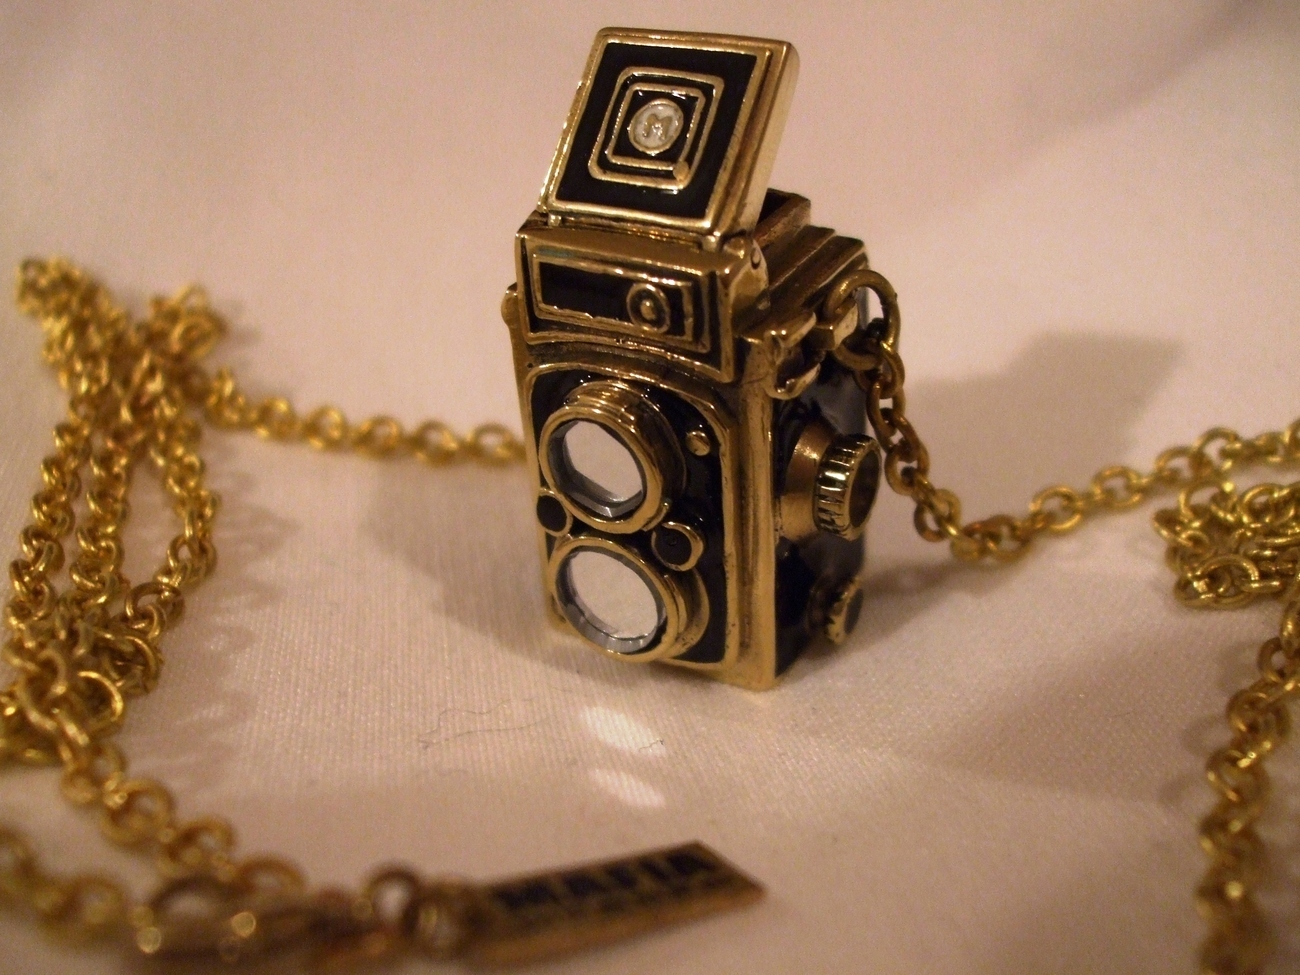 Brass Old Camera Pendant with Chain by MAFIA Jewellery